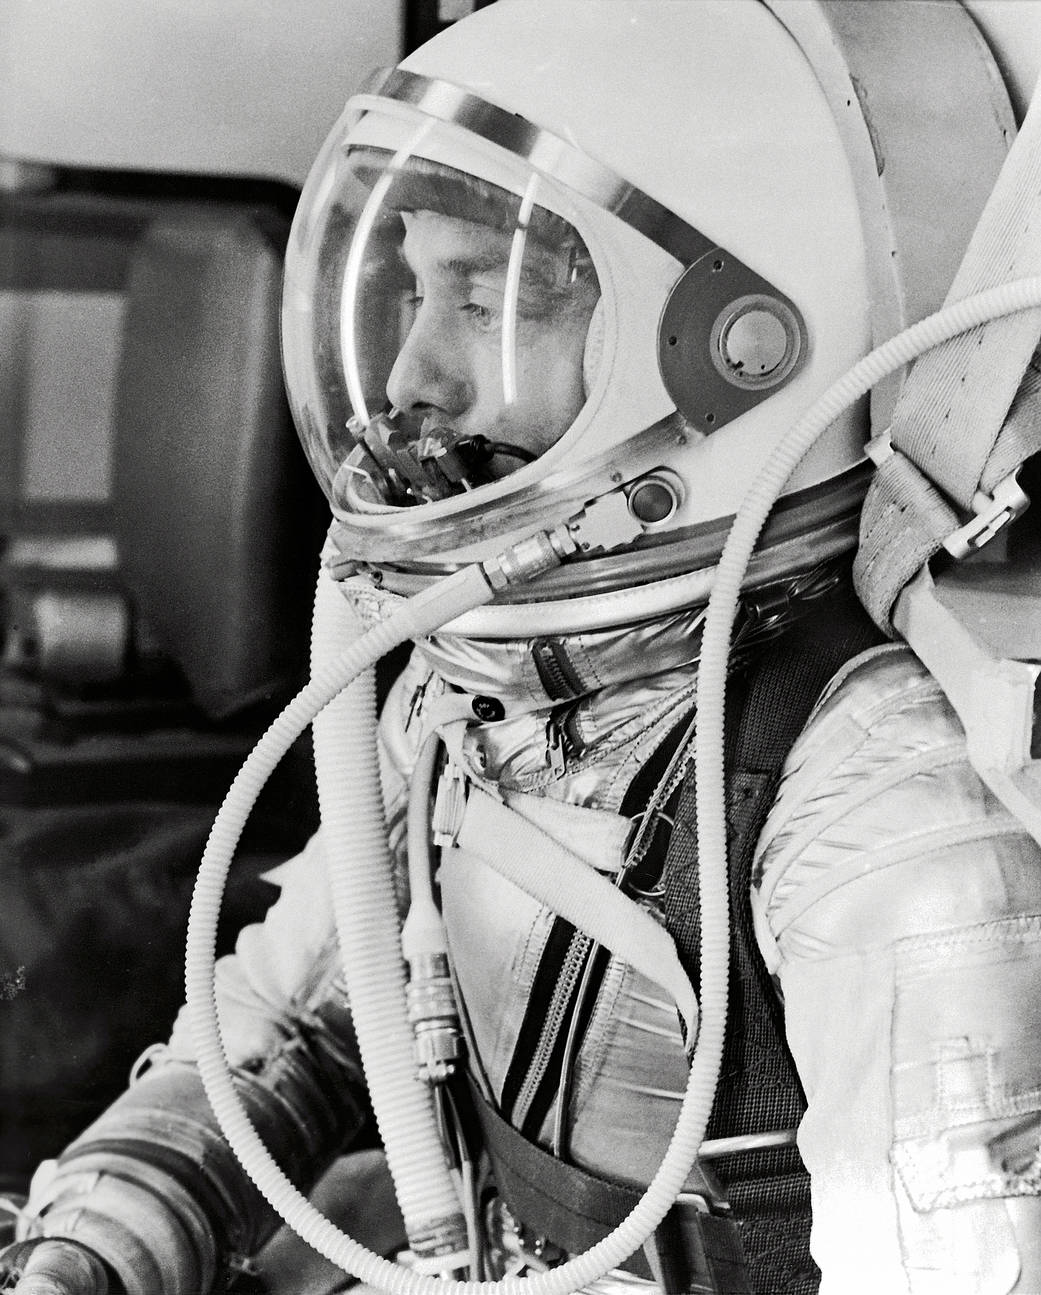 Side profile closeup photo of astronaut Alan Shepard in pressure suit with helmet